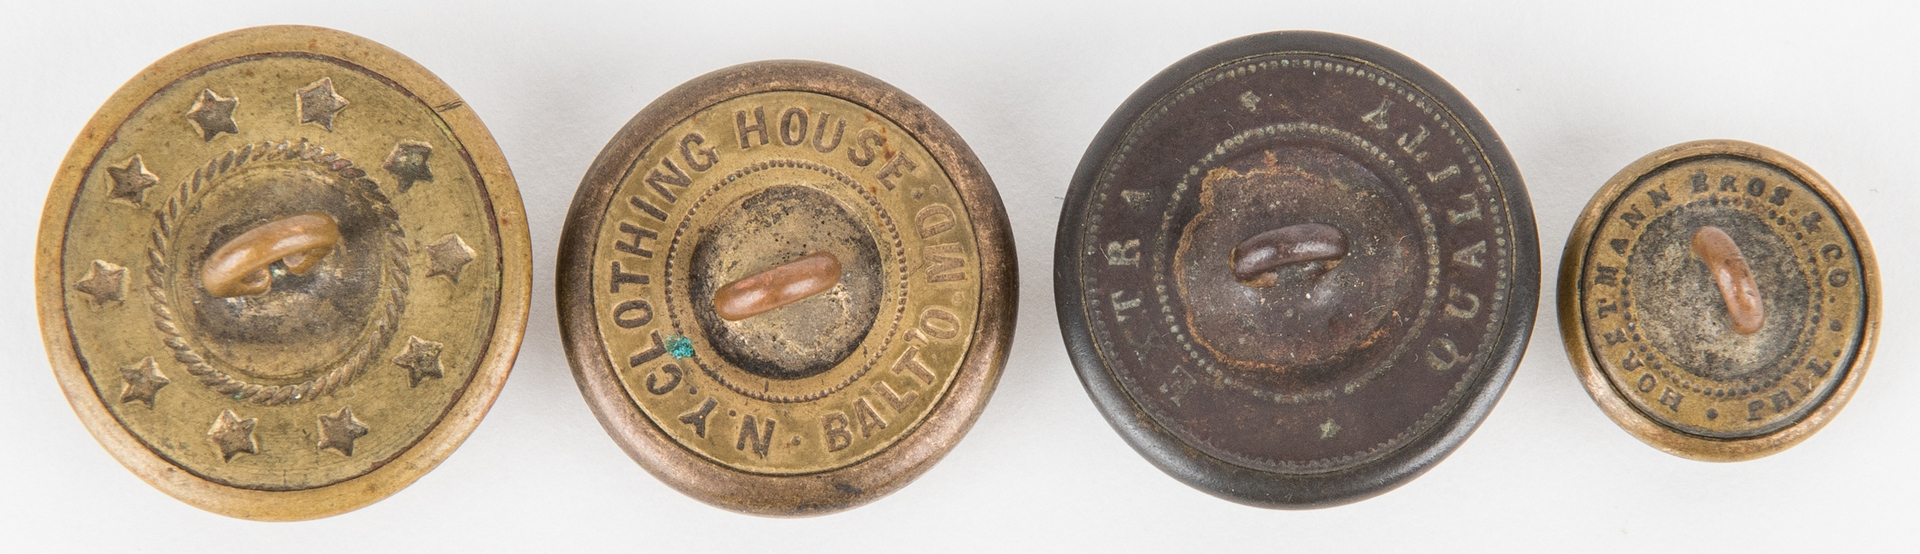 Lot 275: 19 Civil War and Later Items, incl  Belt Plate, Buttons